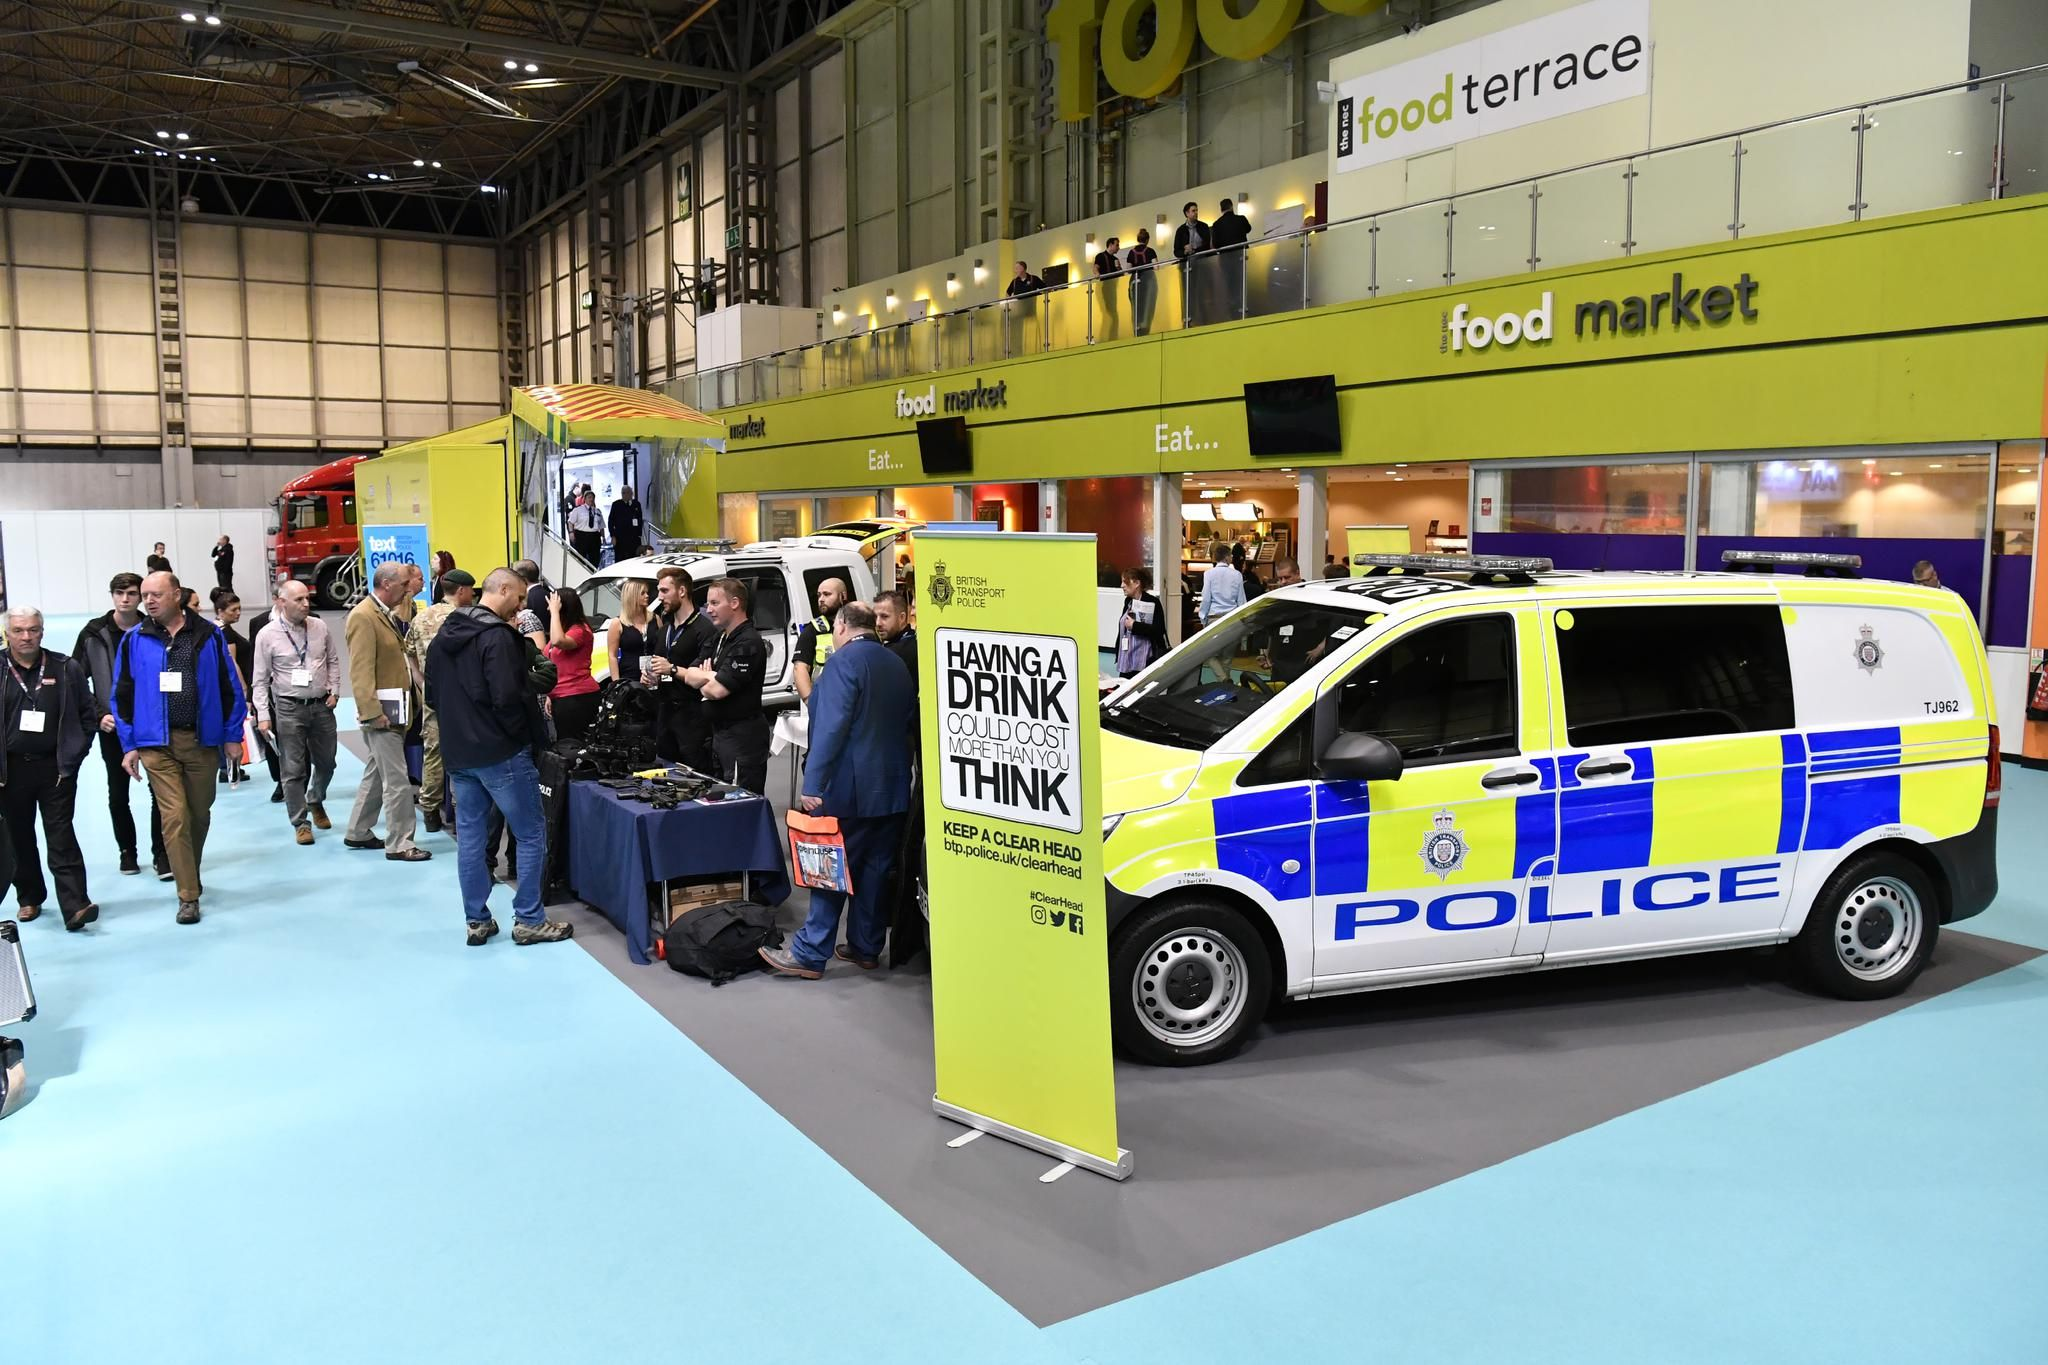 Plenty for police visitors - over 450 Exhibiting Companies and 90 Free CPD Seminars at The Emergency Services Show